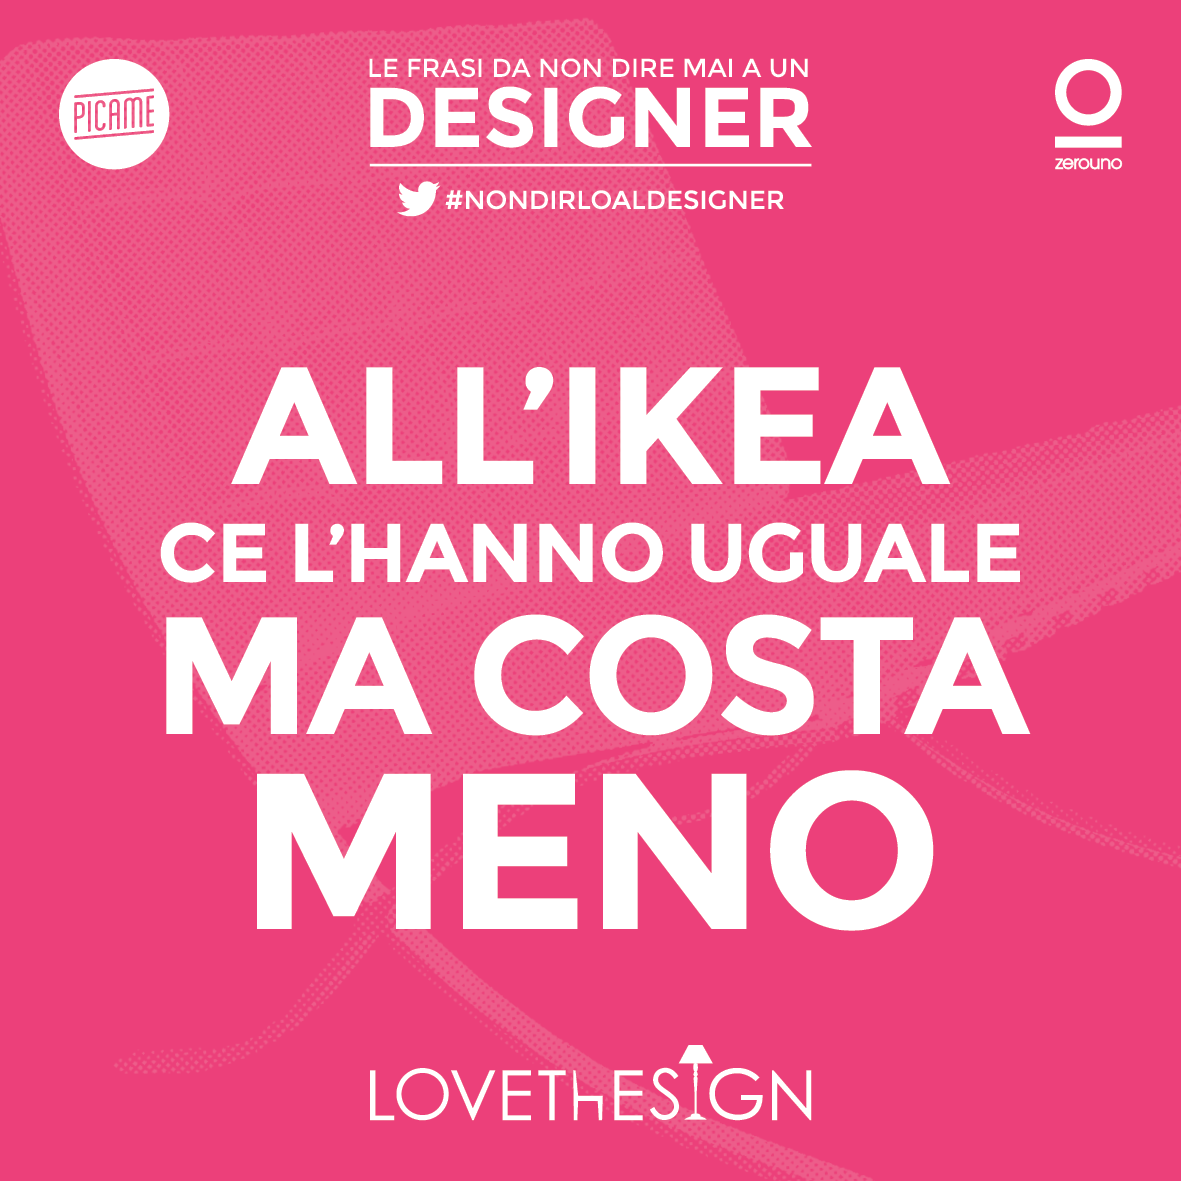 NonDirloalDesigner-Picame-Lovethesign-1